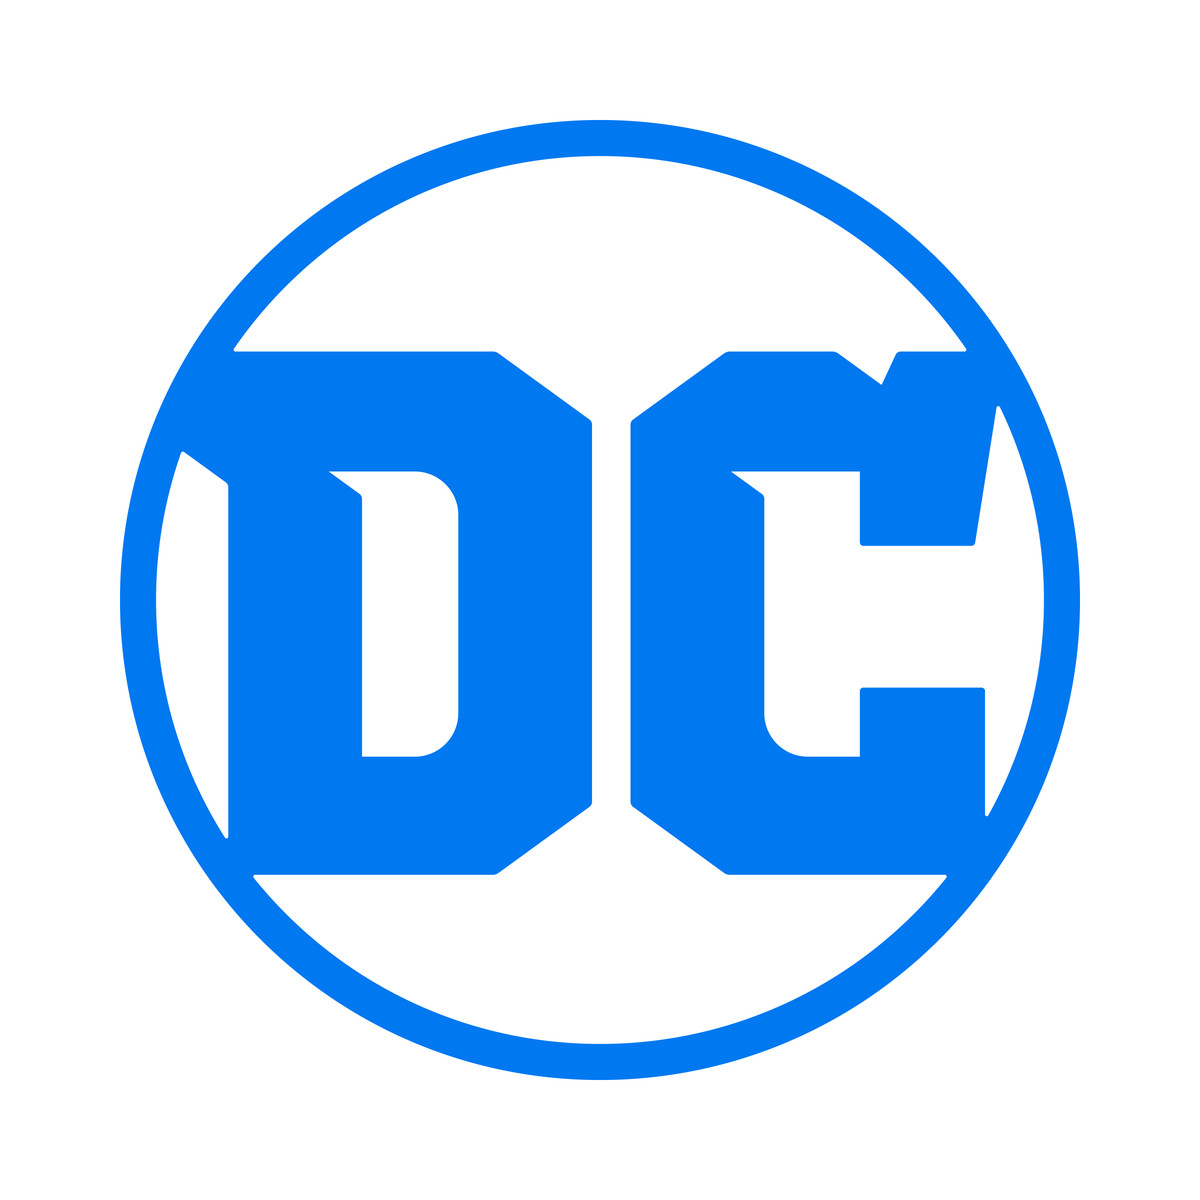 Dc going r rated route top 5 movies we want to see seppinrek it appears after the success of deadpool and logan that warner bros and dc films are considering going down the r rated path buycottarizona